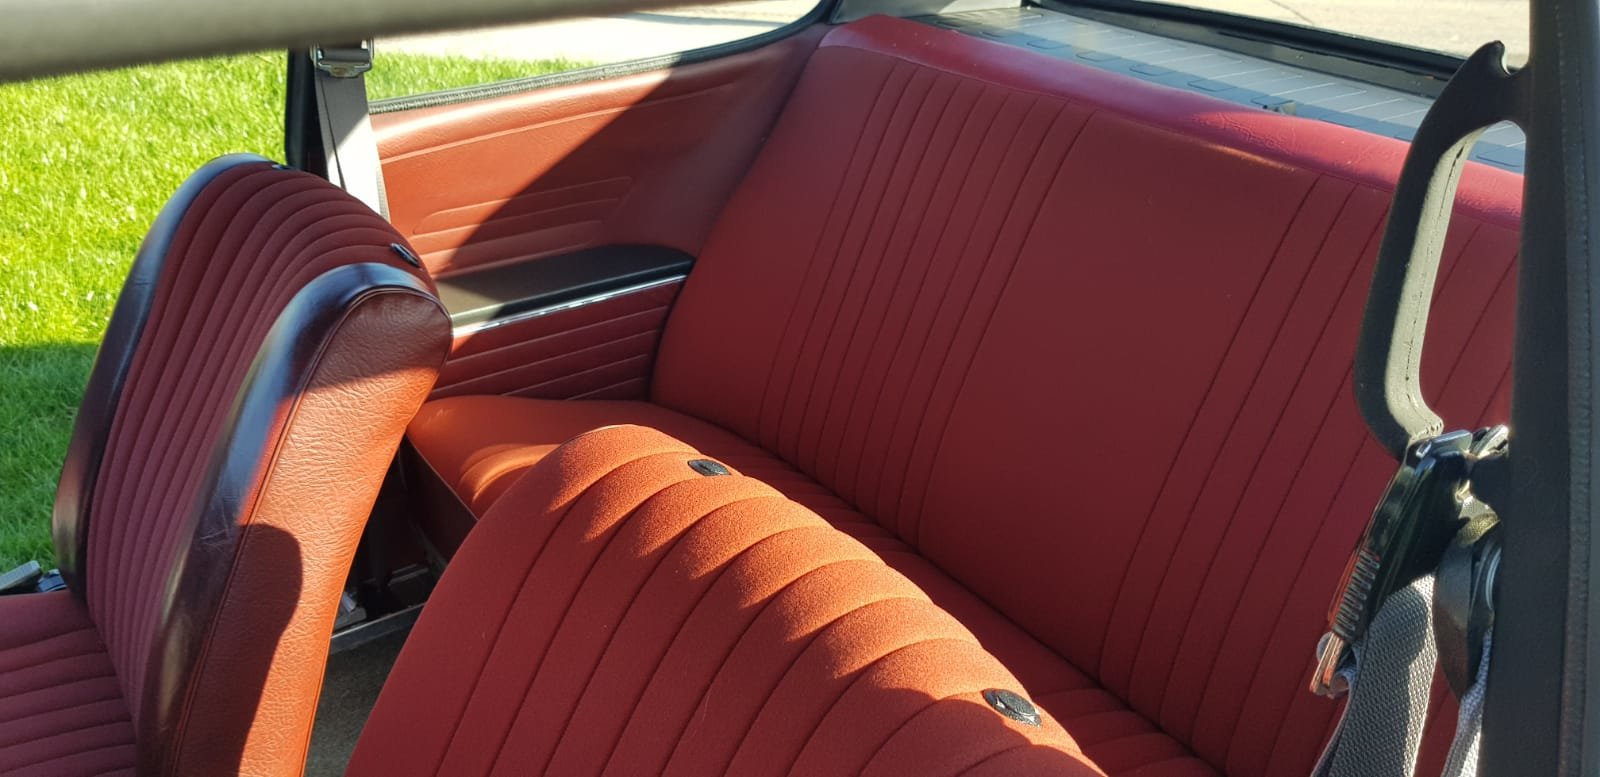 1971 Saab 99 1709cc 2-door, 79k miles, immaculate condition For Sale (picture 4 of 12)